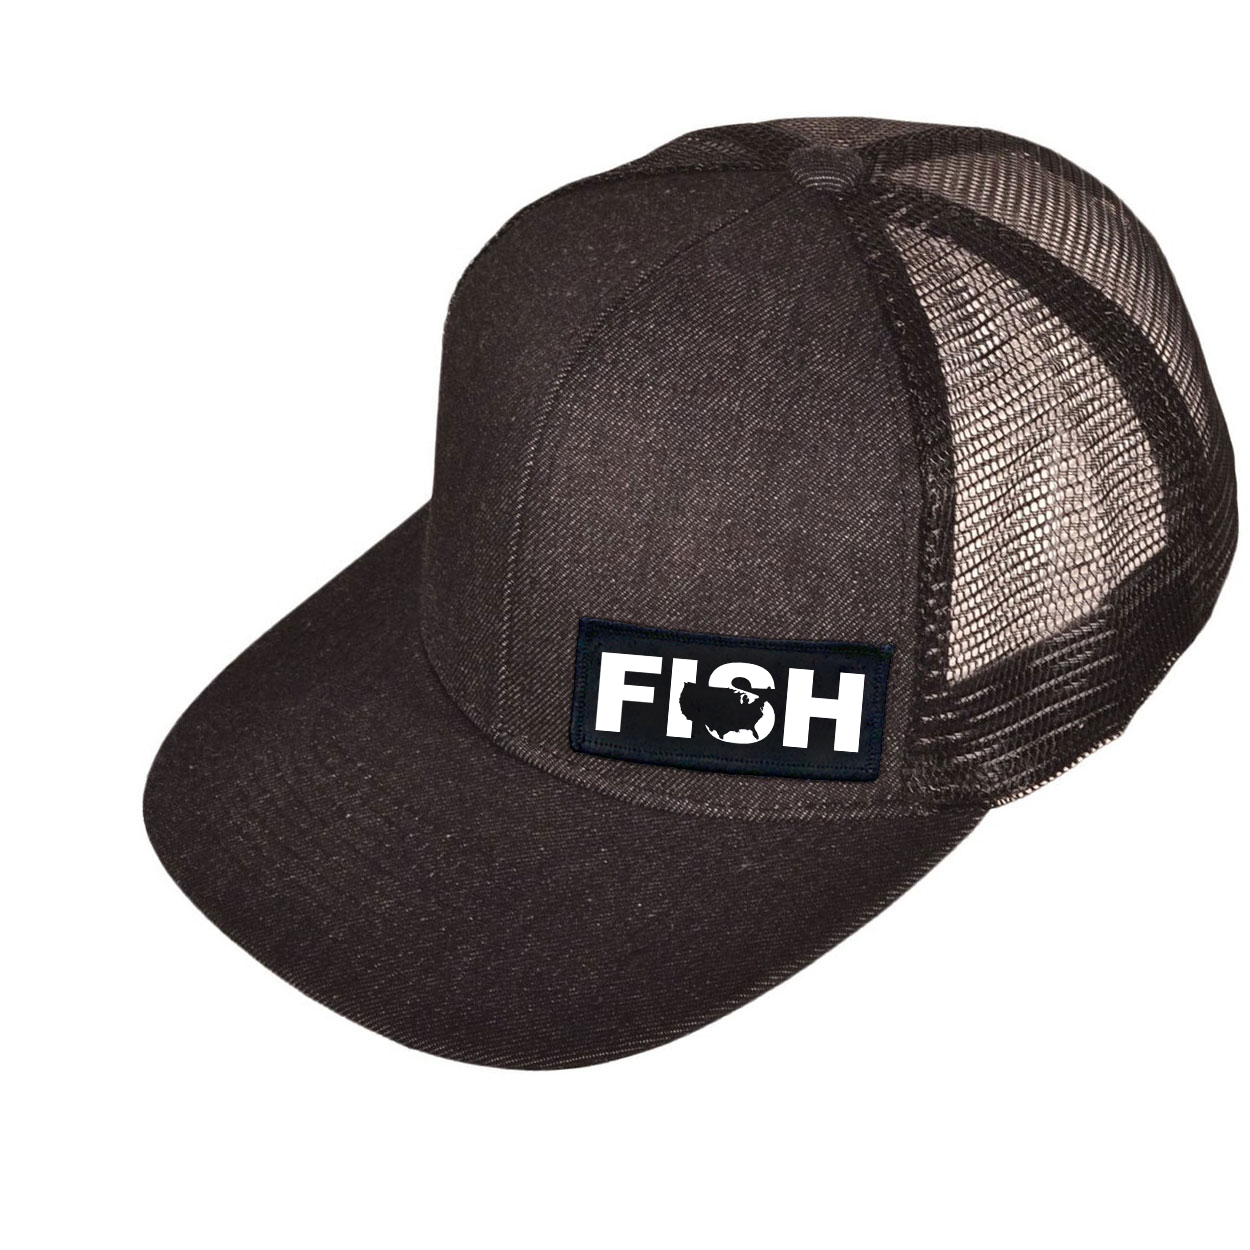 Fish United States Night Out Woven Patch Snapback Flat Brim Hat Black Denim (White Logo)